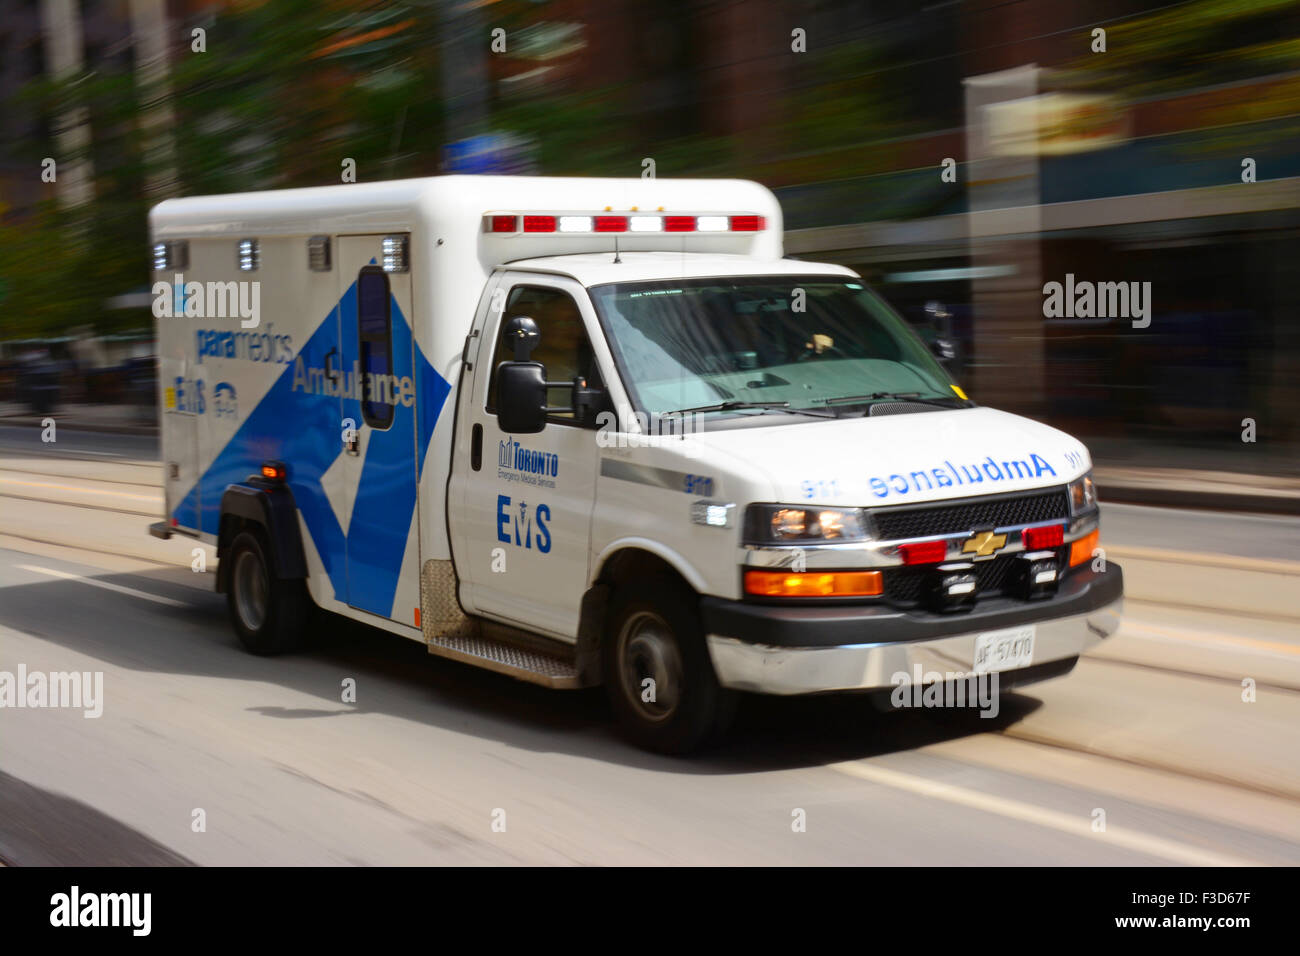 Ambulance rushing in Toronto streets - Stock Image